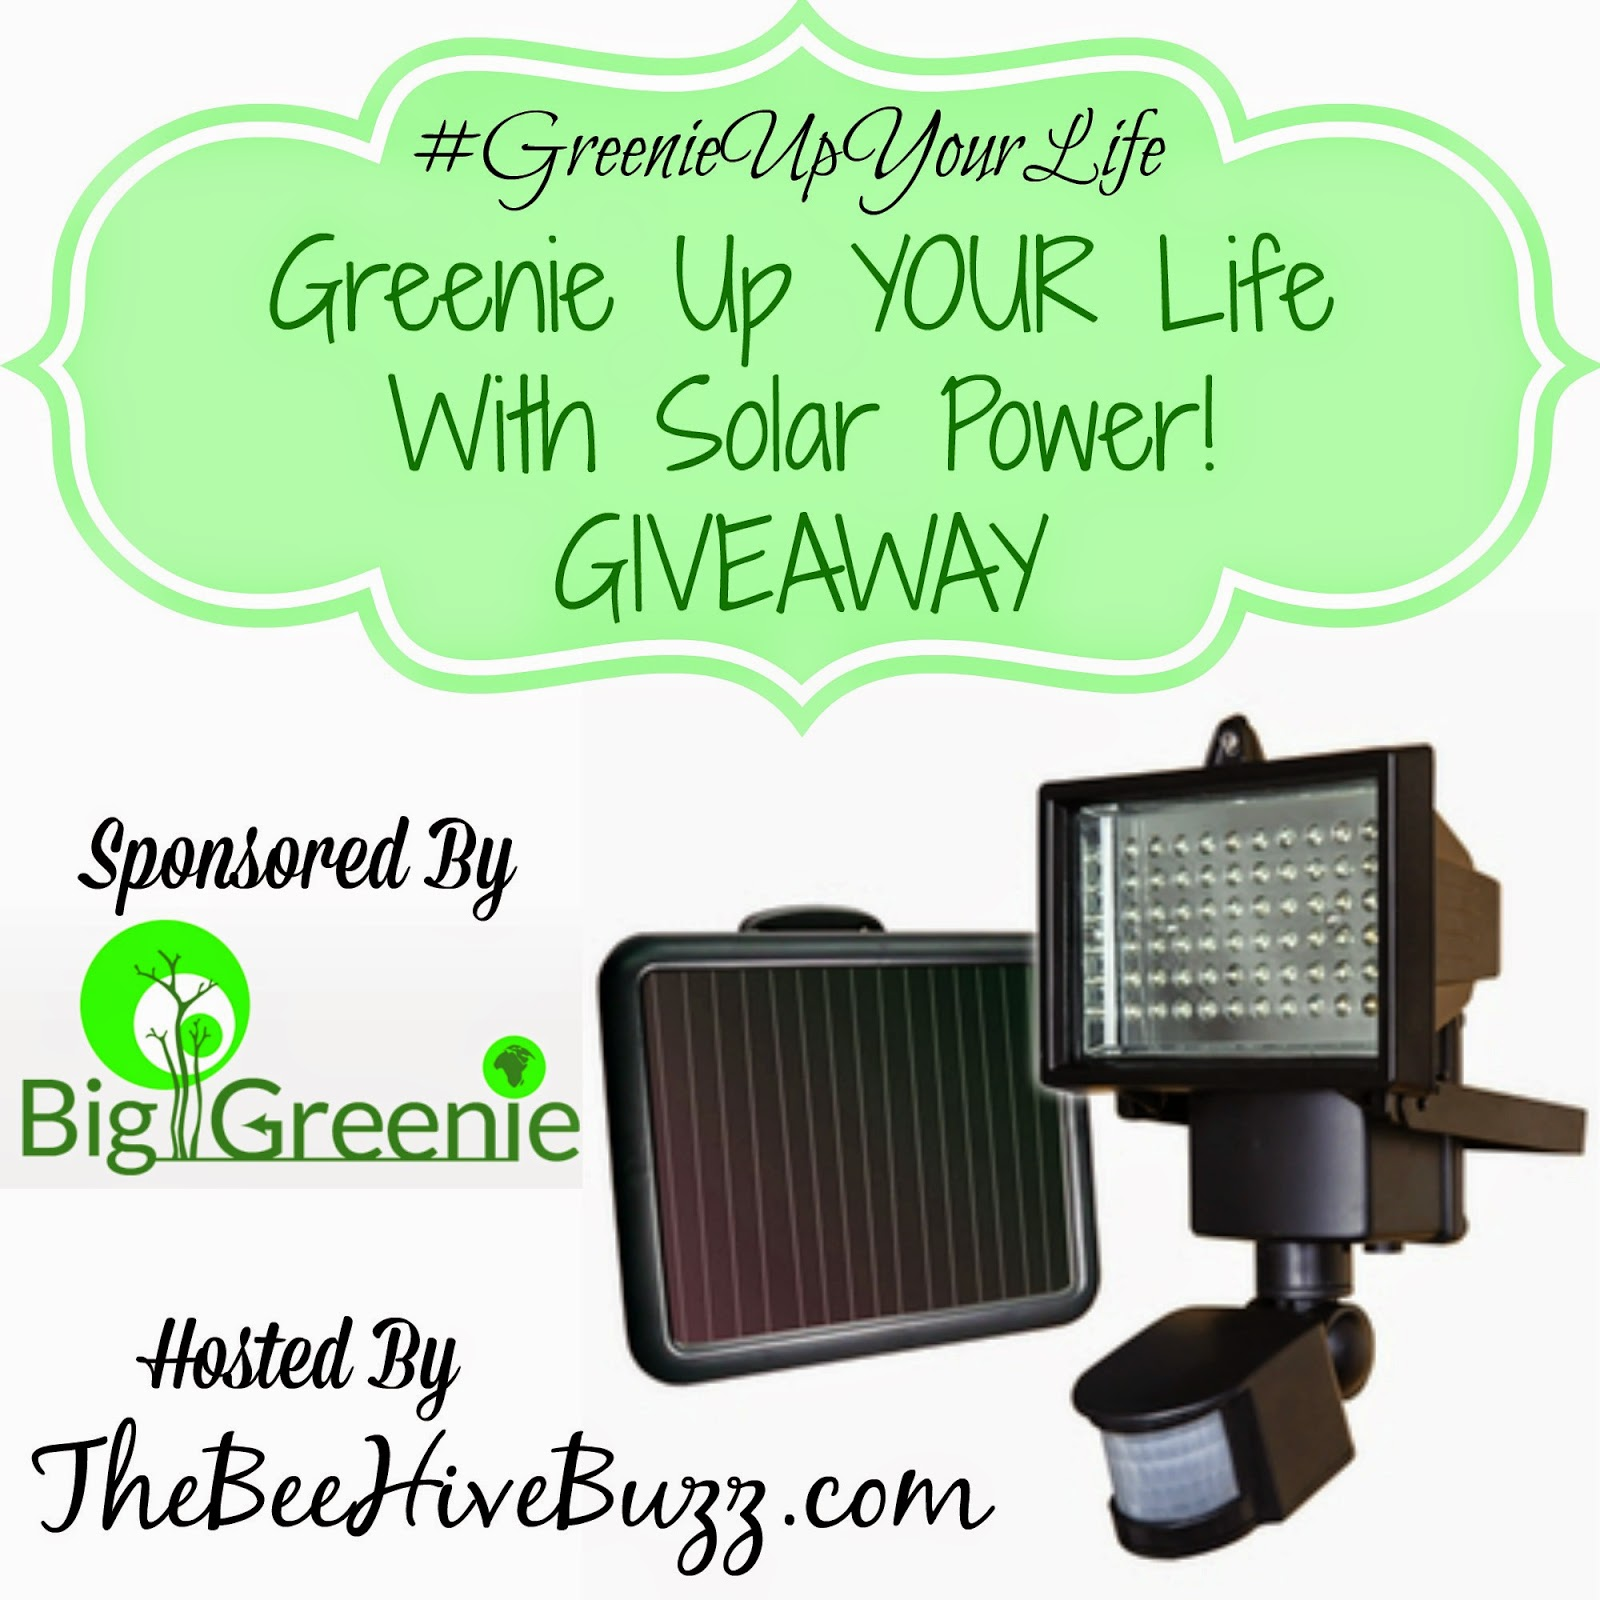 http://www.thebeehivebuzz.com/2014/12/big-greenie-sunforce-led-solar-motion-light-giveaway-greenieupyourlife.html